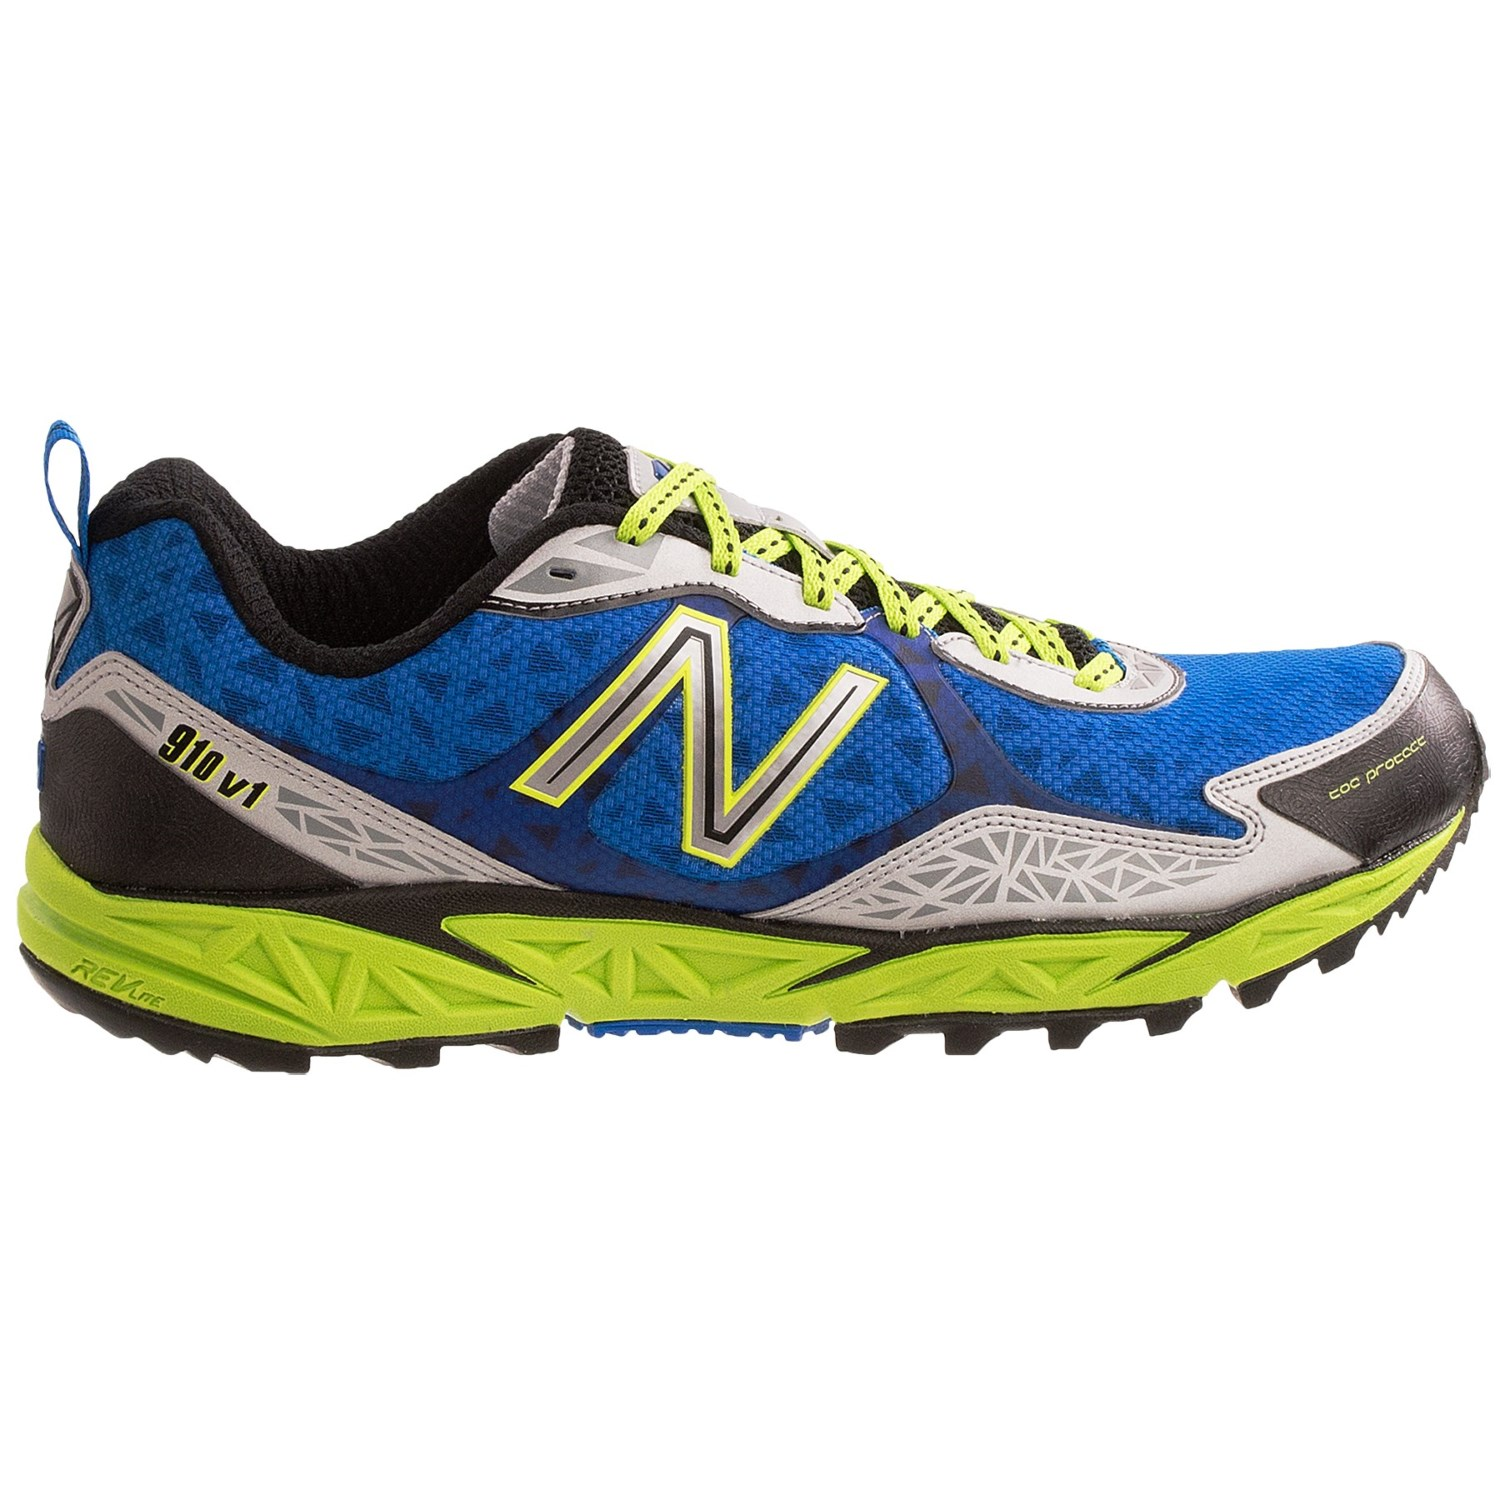 Trail Running Shoes Forefoot Cushioning